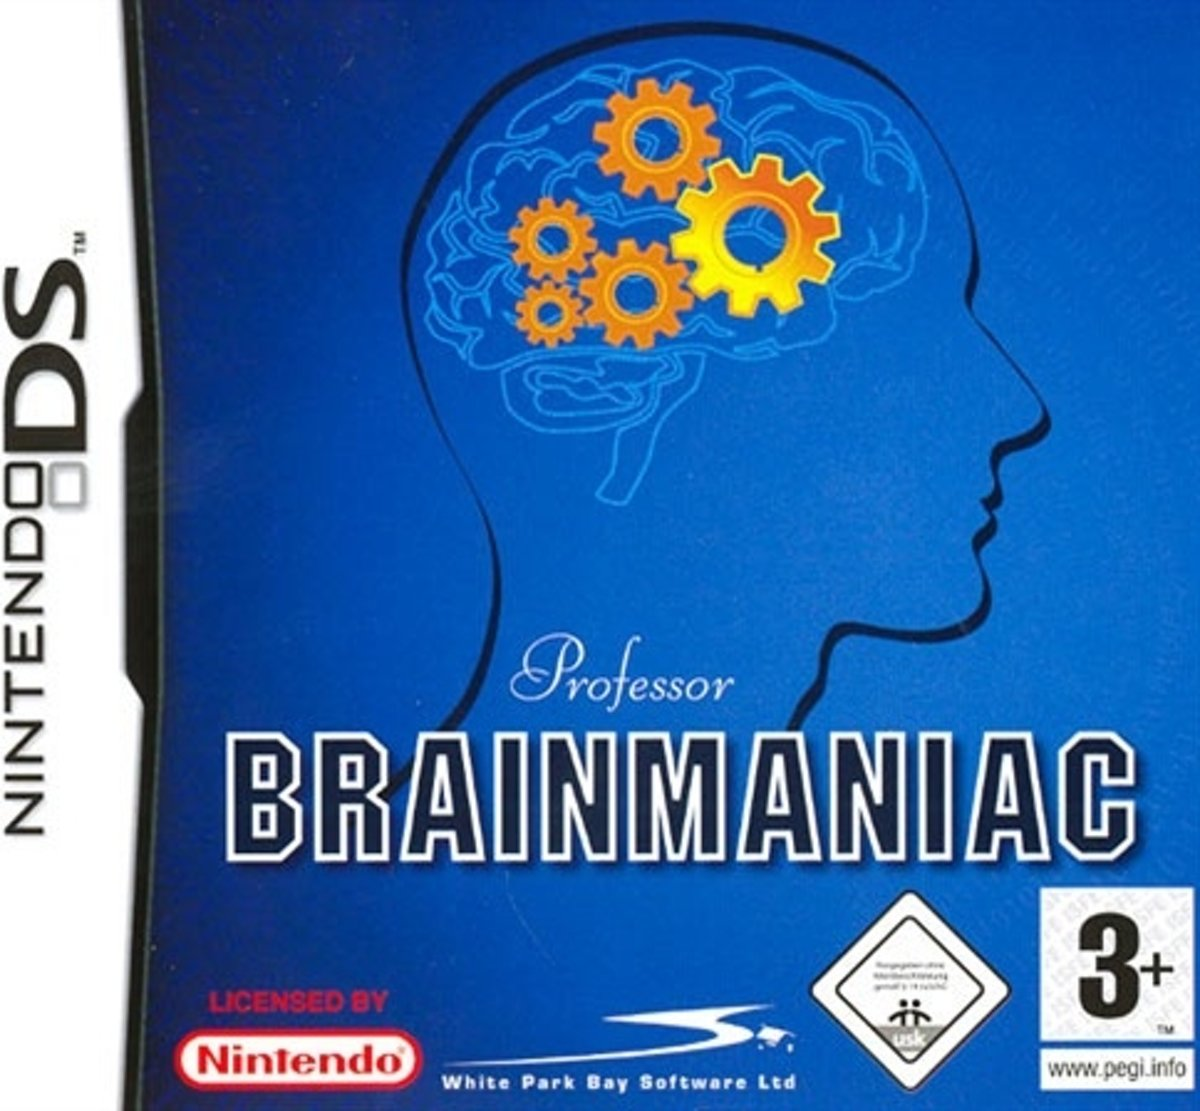 Professor Brainmaniac Nds